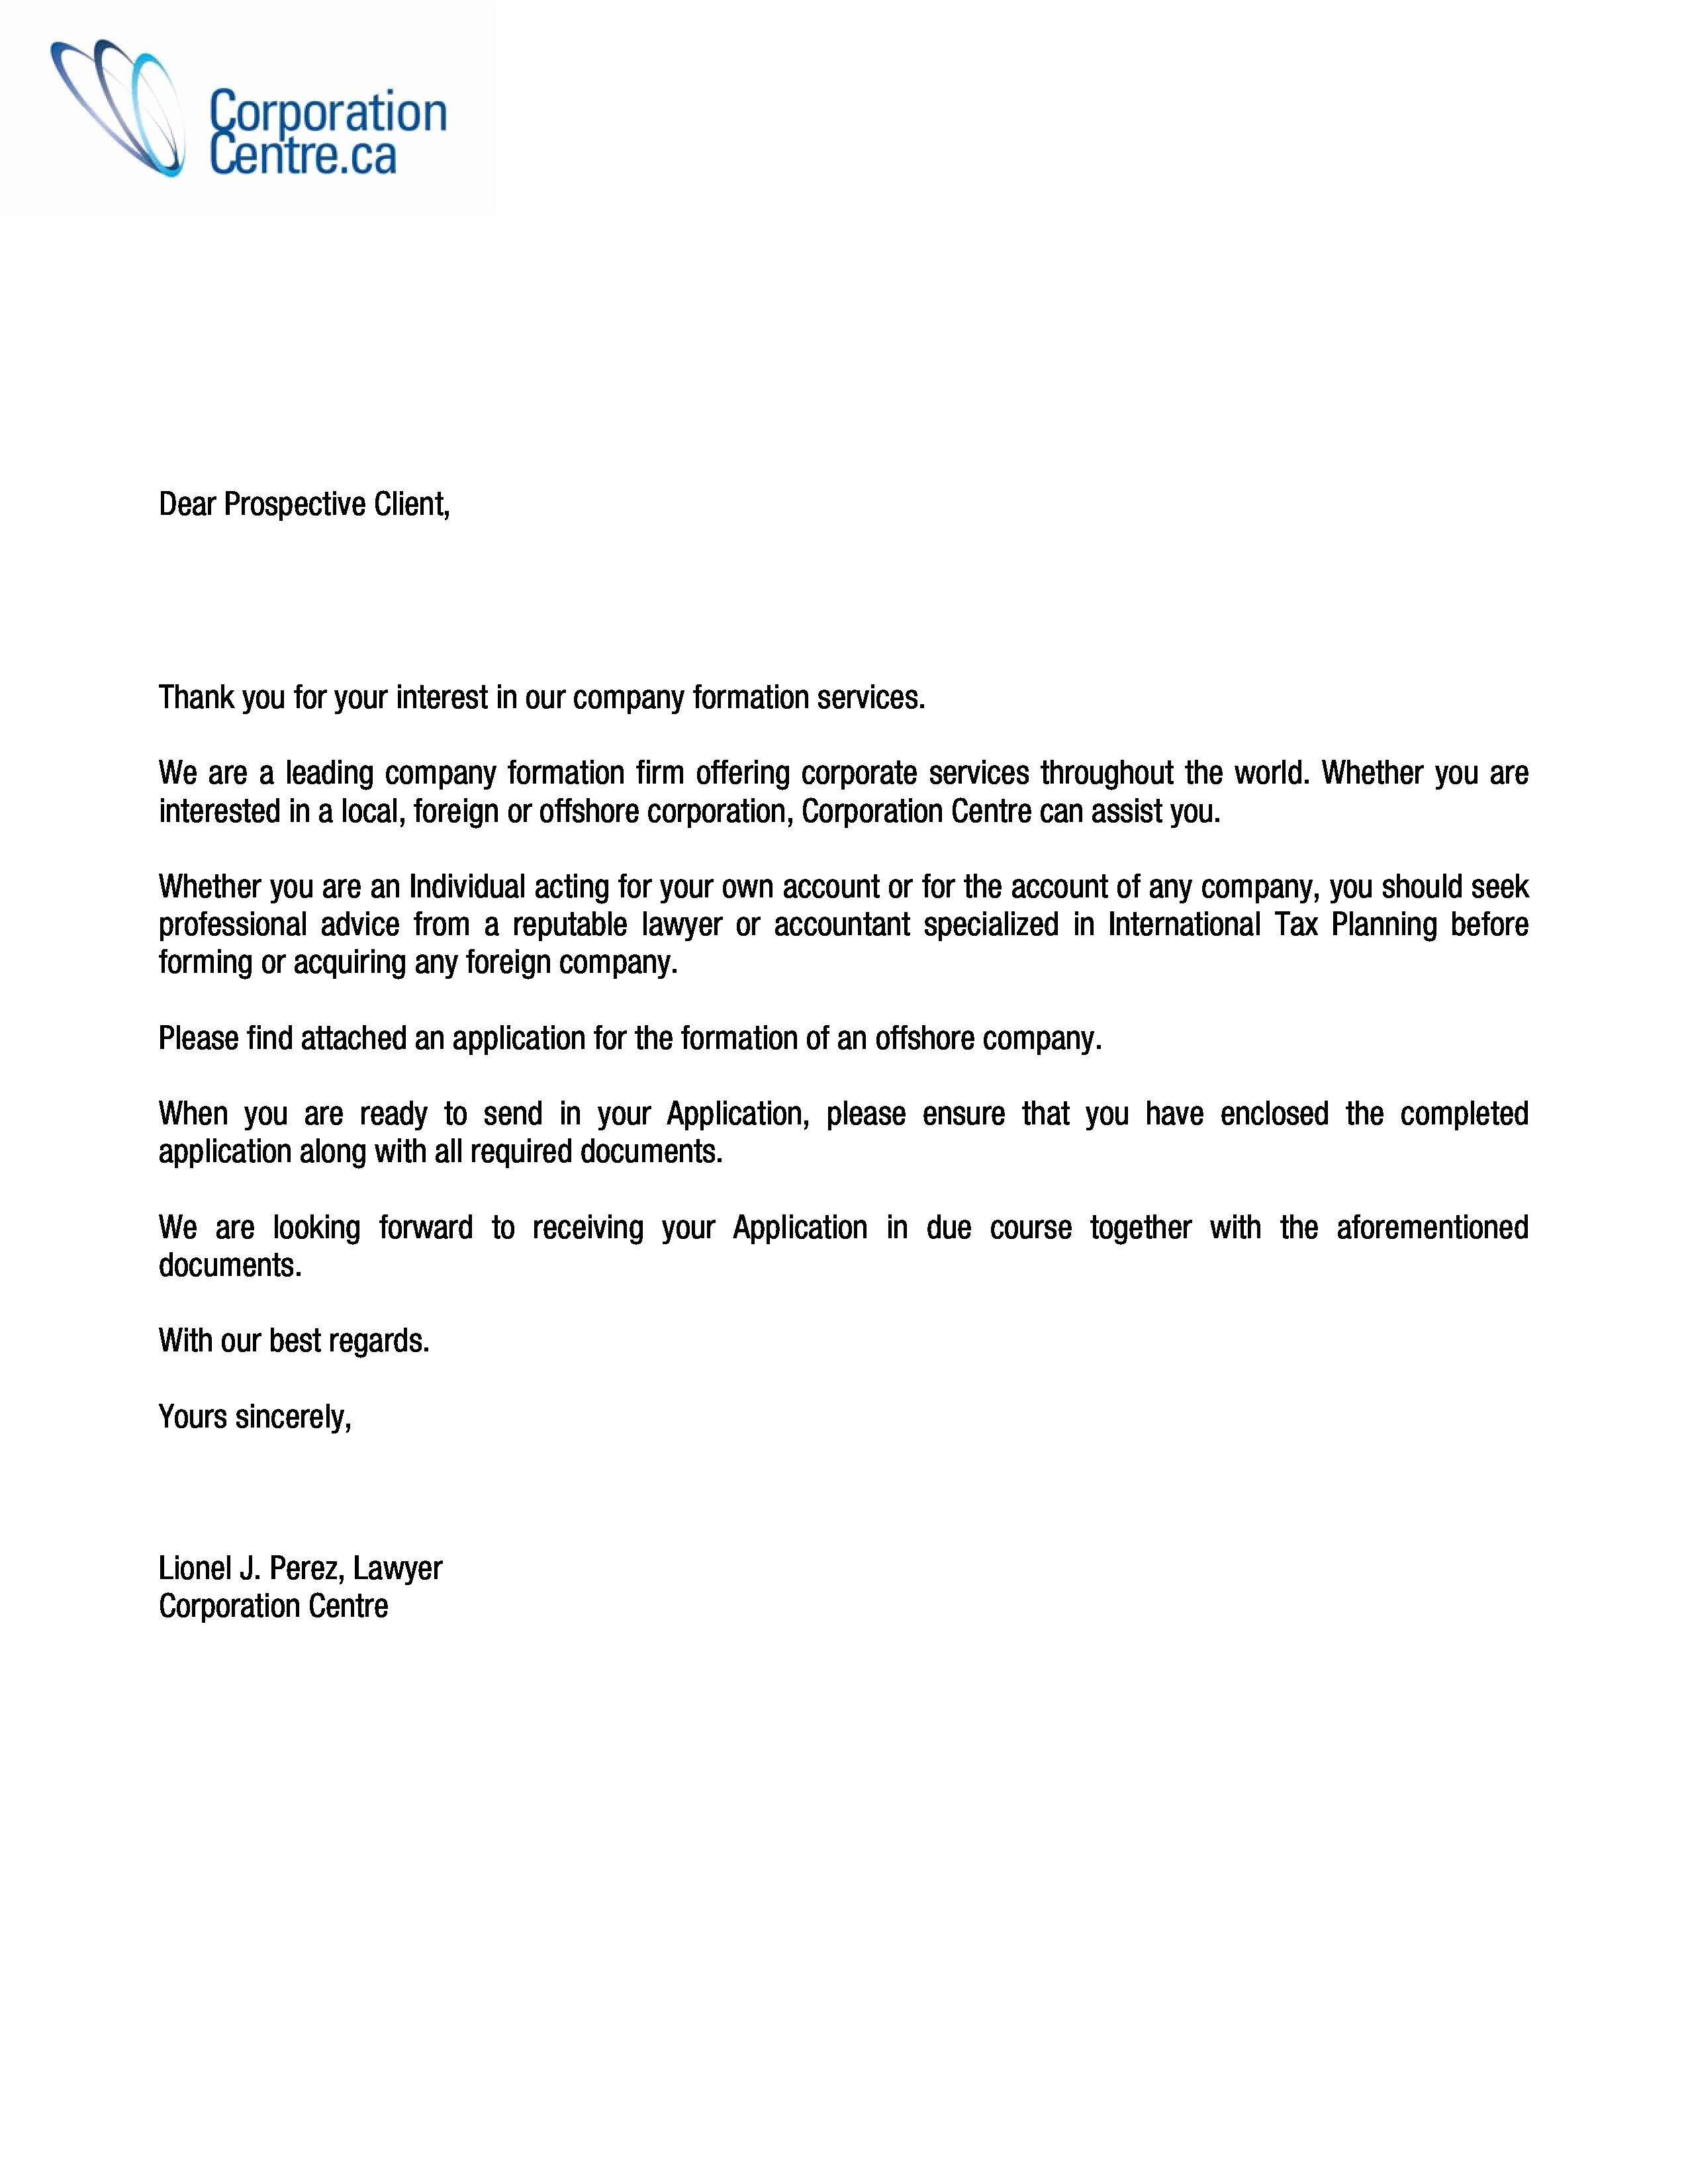 Donation Letter Template for Tax Purposes - Exceptional Tax Donation Letter Template